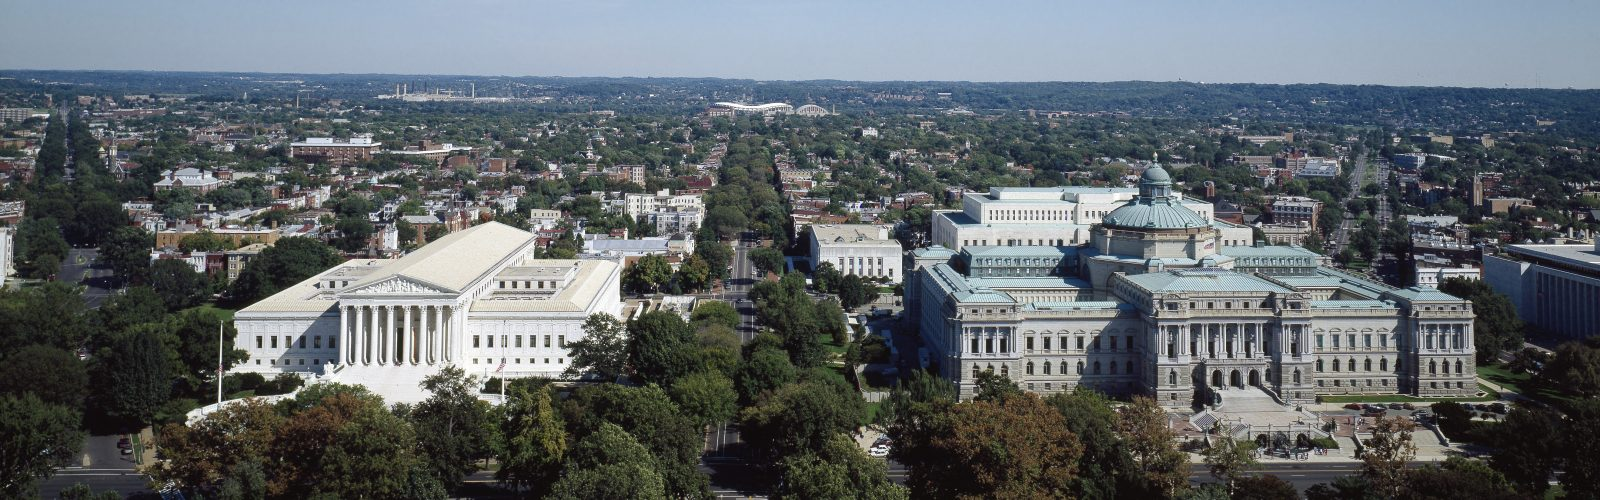 U.S. Supreme Court and Library of Congress Thomas Jefferson Building, taken from the U.S. Capitol dome, Washington, D.C.